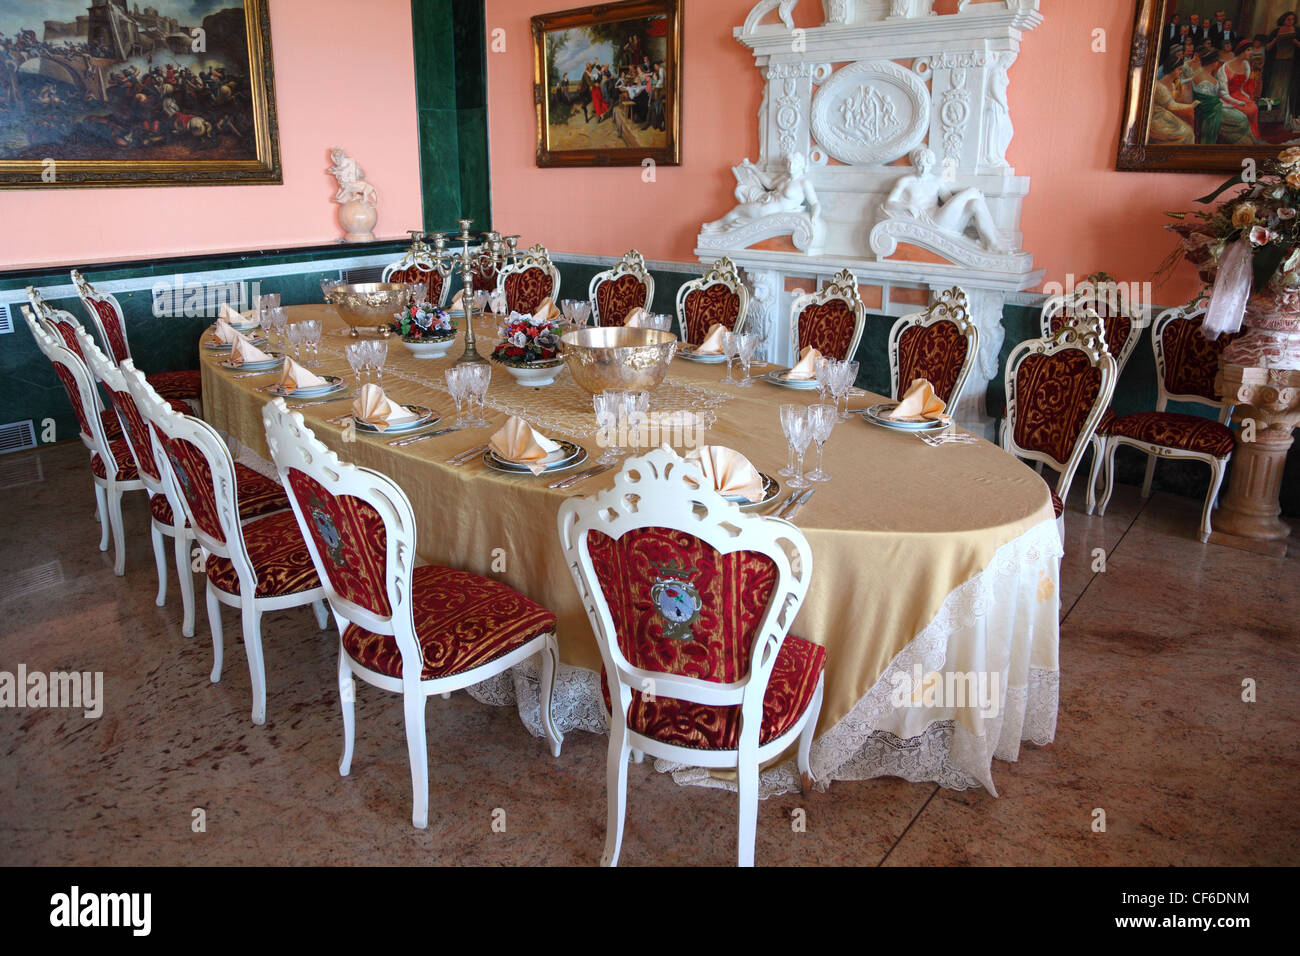 Big Oval Dinner Table With Empty Dishes: Plates With Placemat, Forks,  Knives And